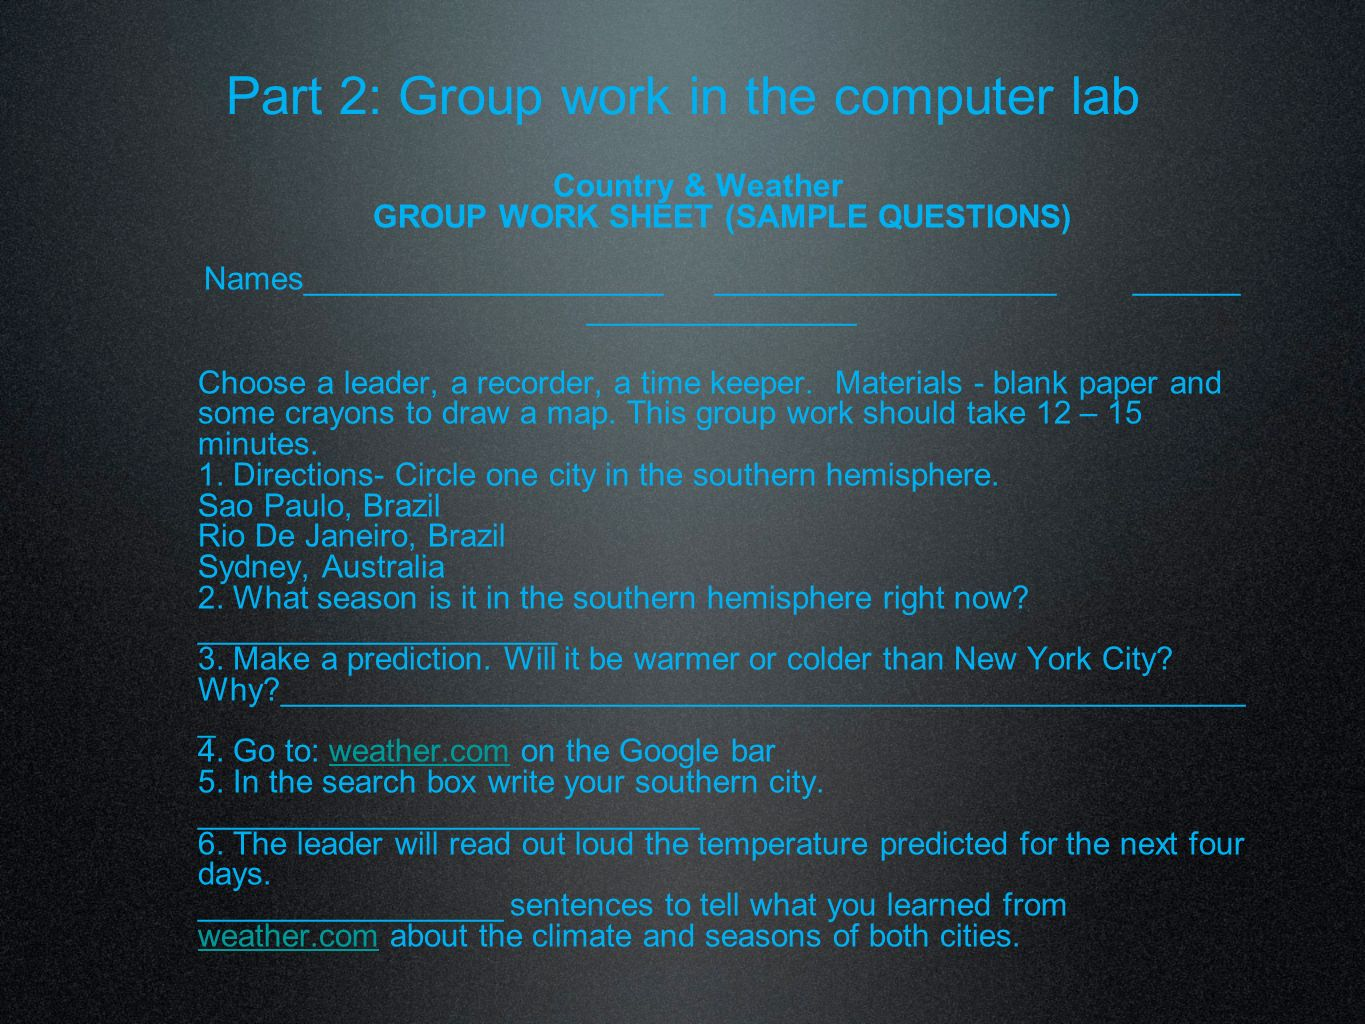 Part 2: Group work in the computer lab